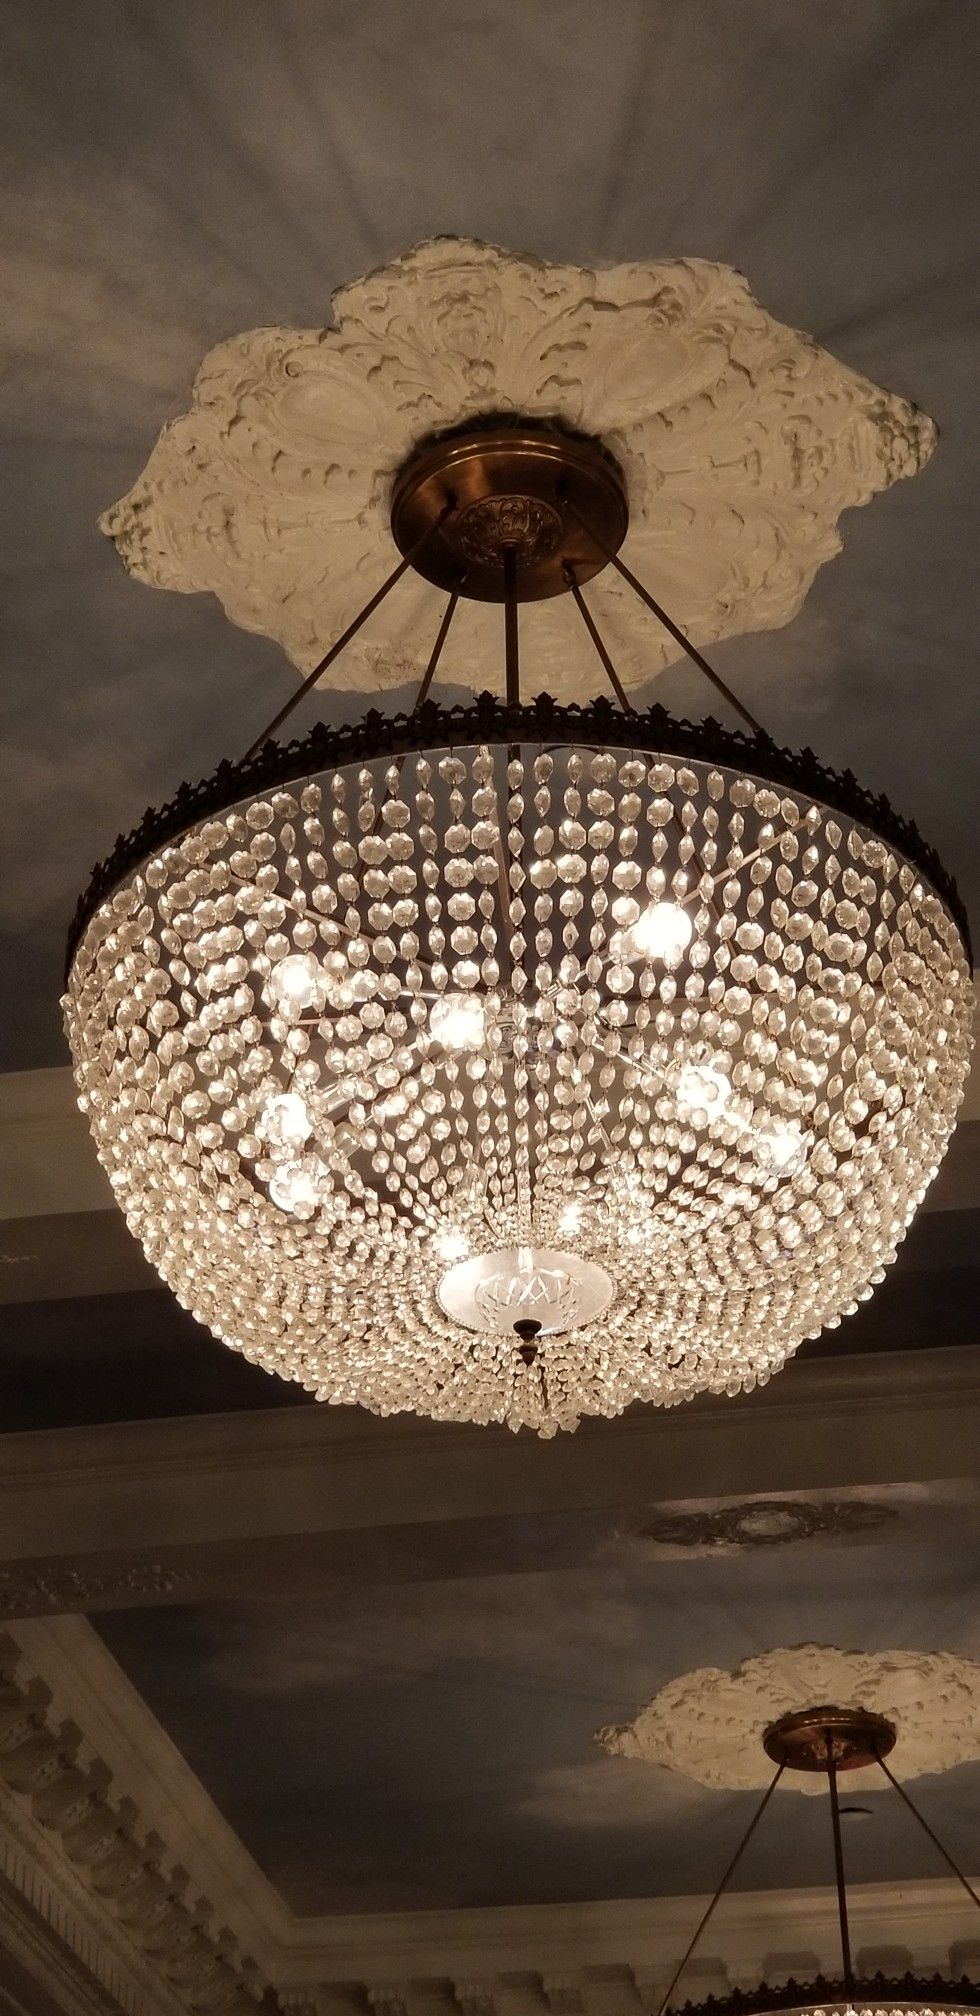 Chandelier at the hotel jefferson in richmond virginia